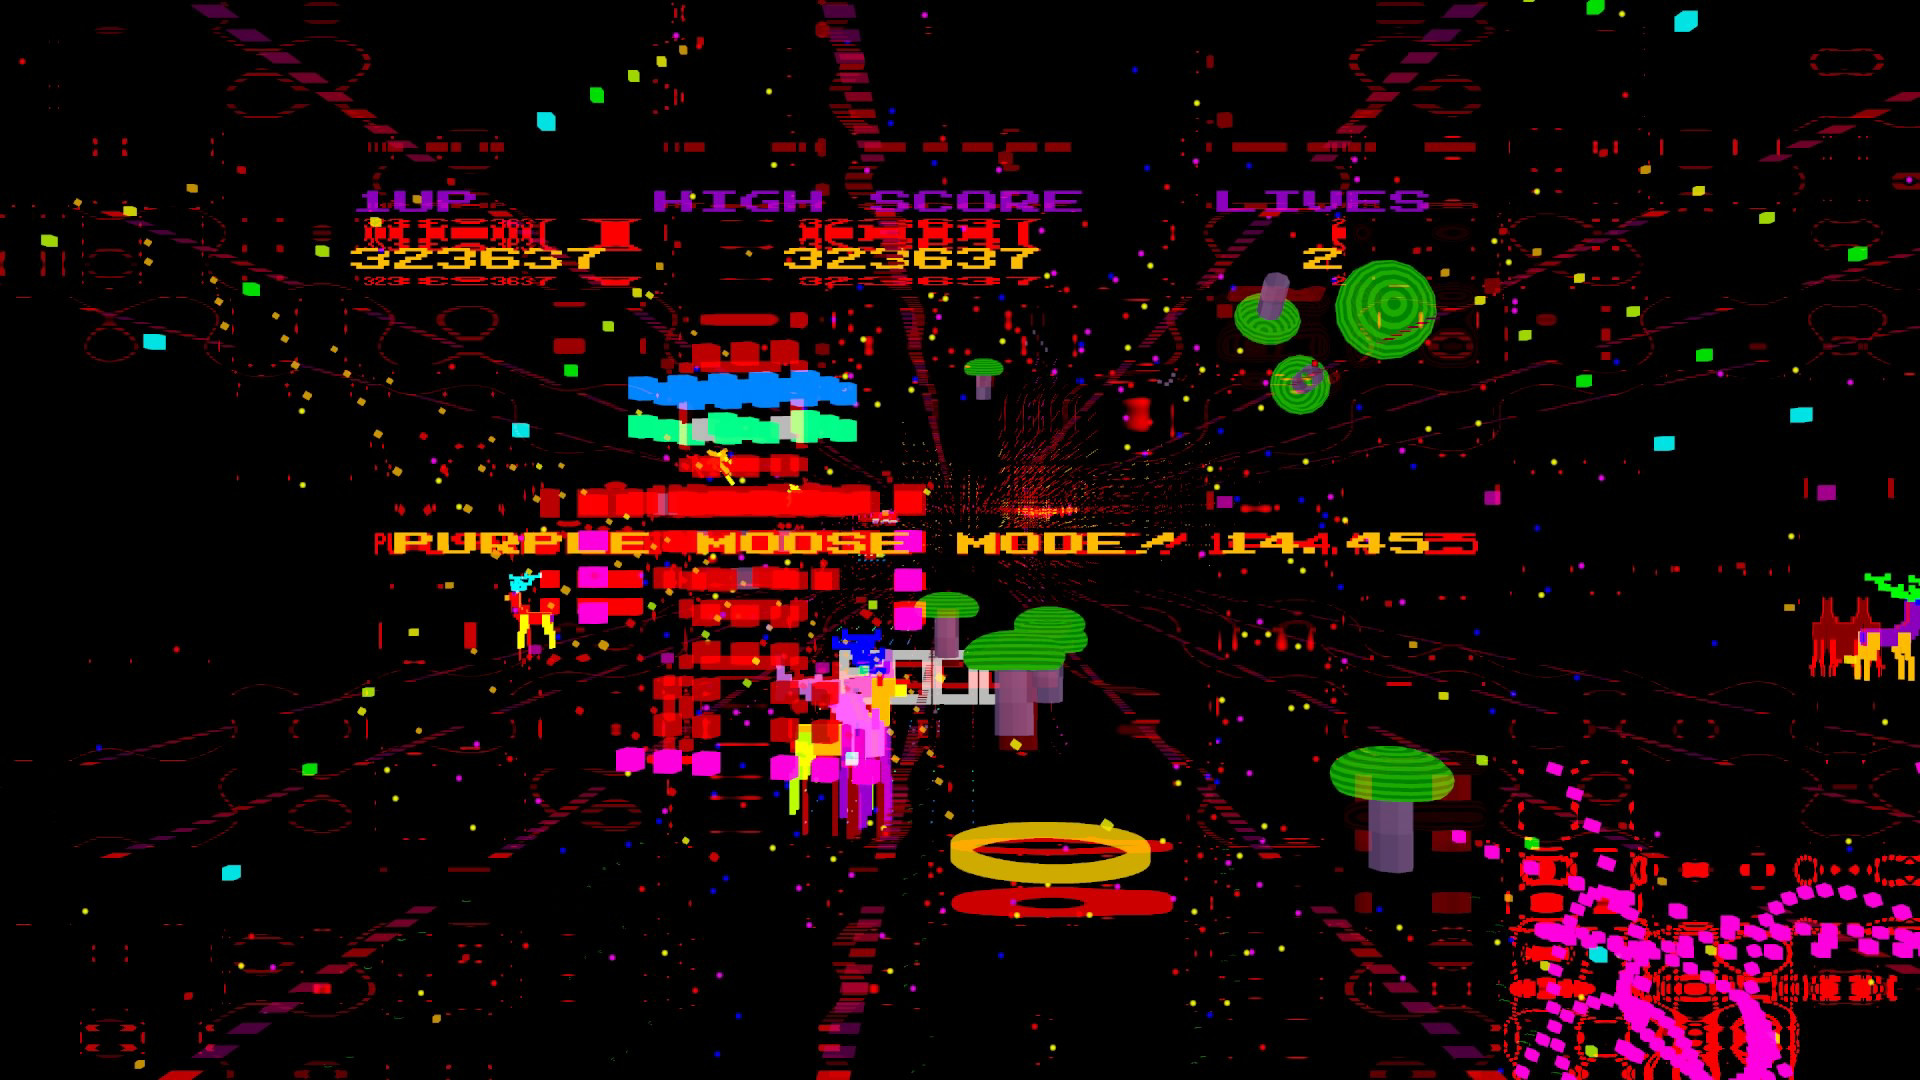 Psychedelic trance shooter Moose Life, from Jeff Minter, comes this month